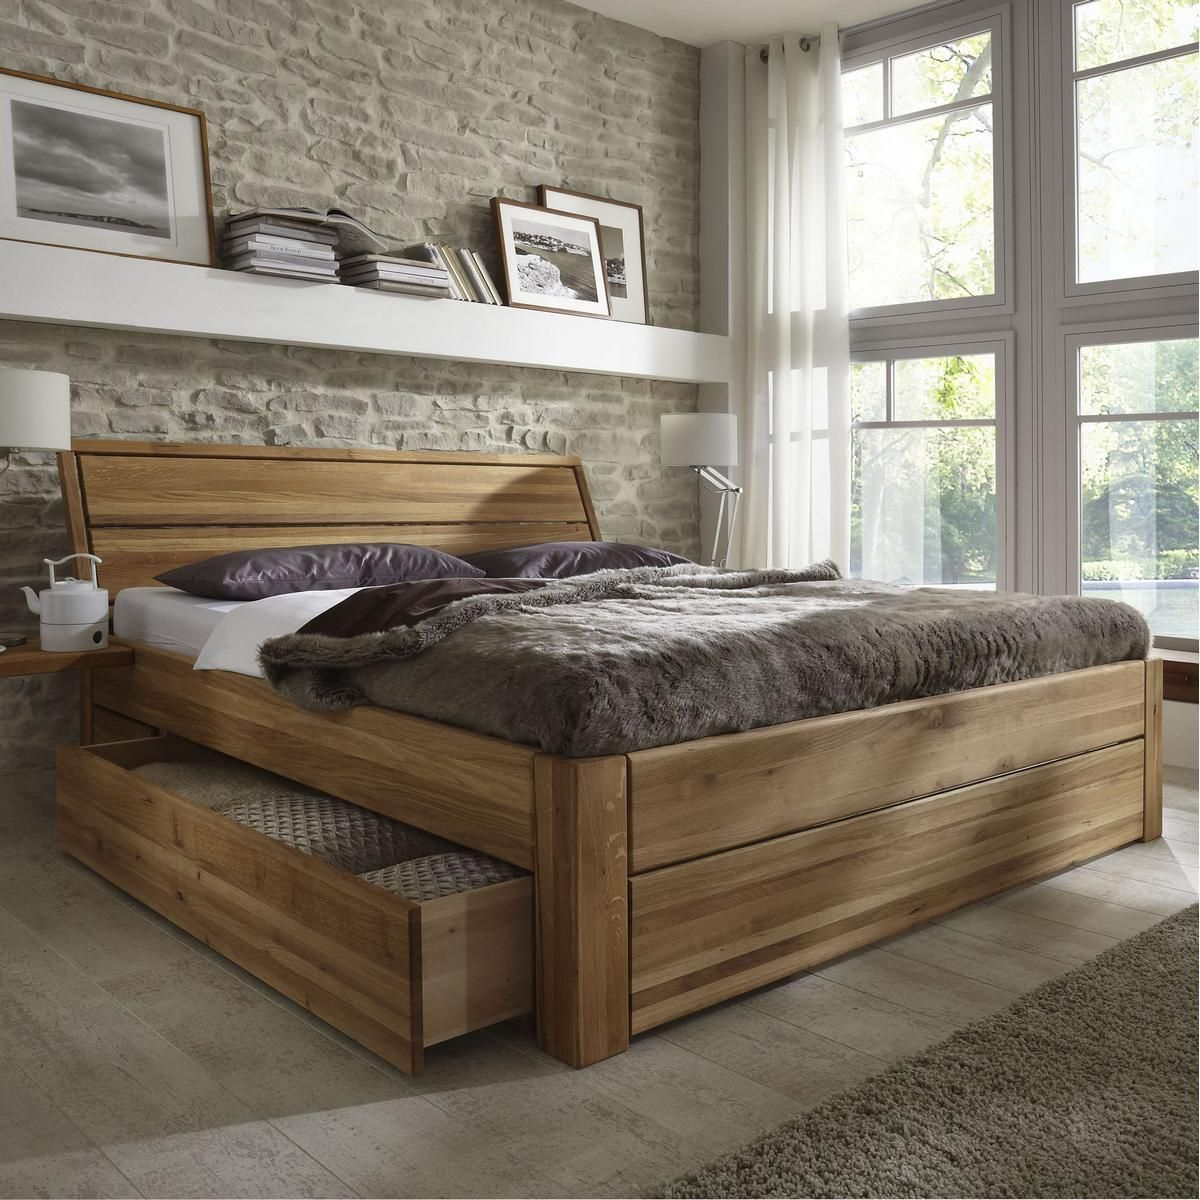 massivholz schubladenbett 180x200 holzbett bett eiche massiv ge lt idea in 2018 pinterest. Black Bedroom Furniture Sets. Home Design Ideas